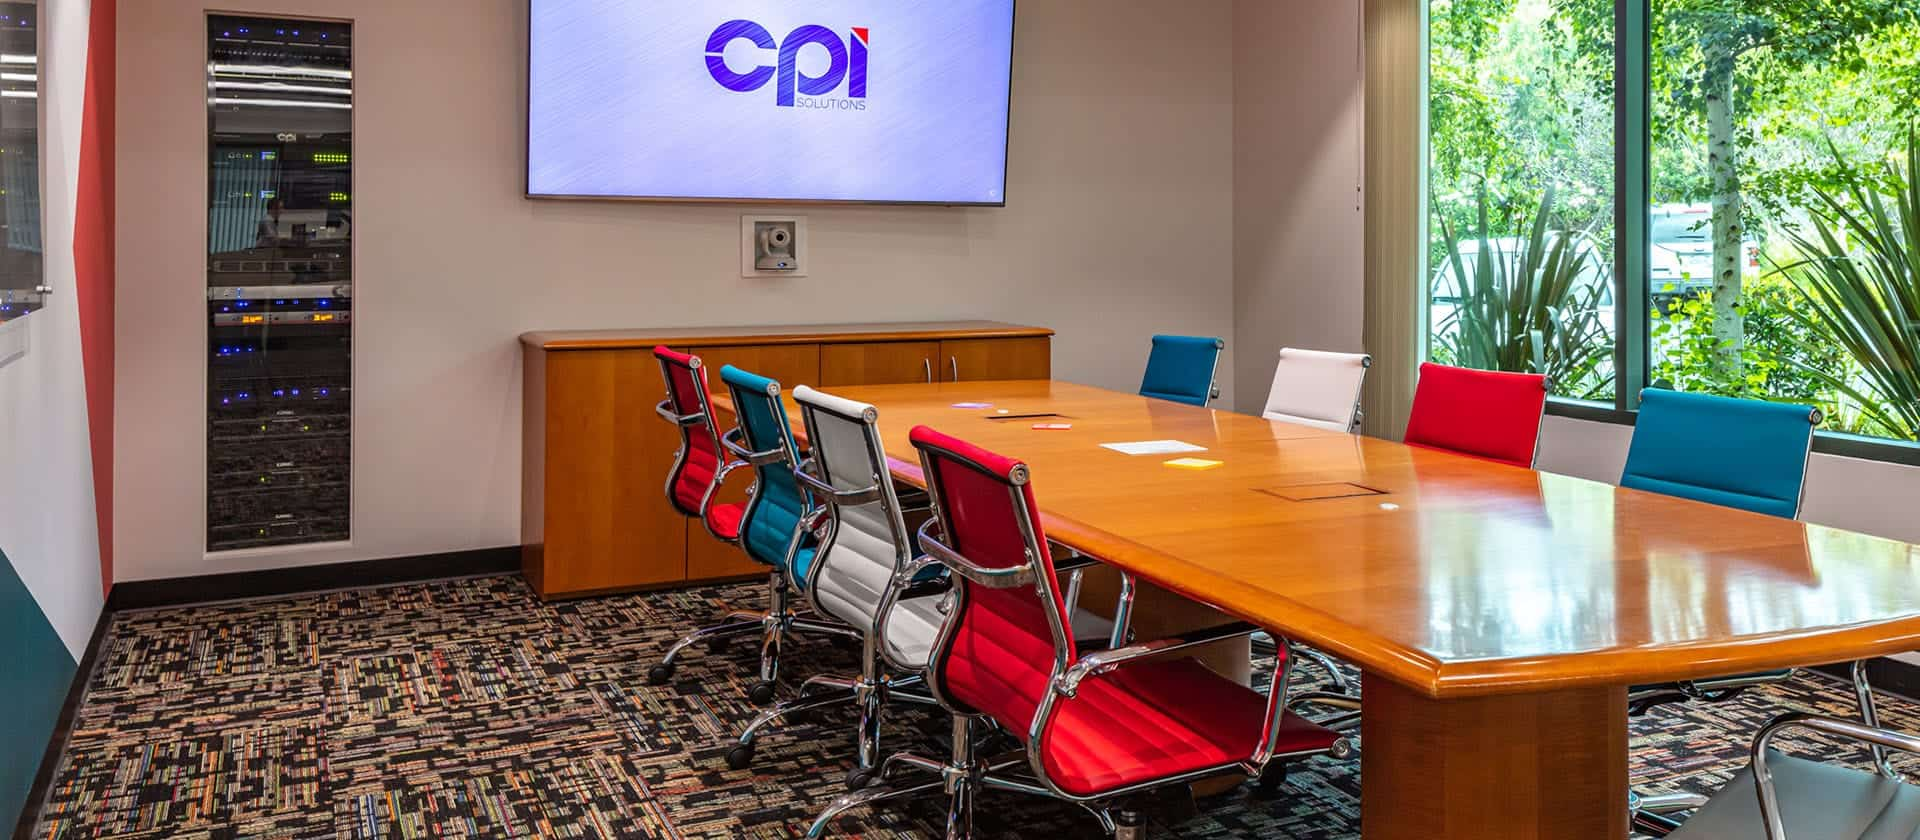 Audio Visual Solutions for custom conference rooms, LifeSize video conferencing and presentation systems for commercial audio visual and Crestron solutions.